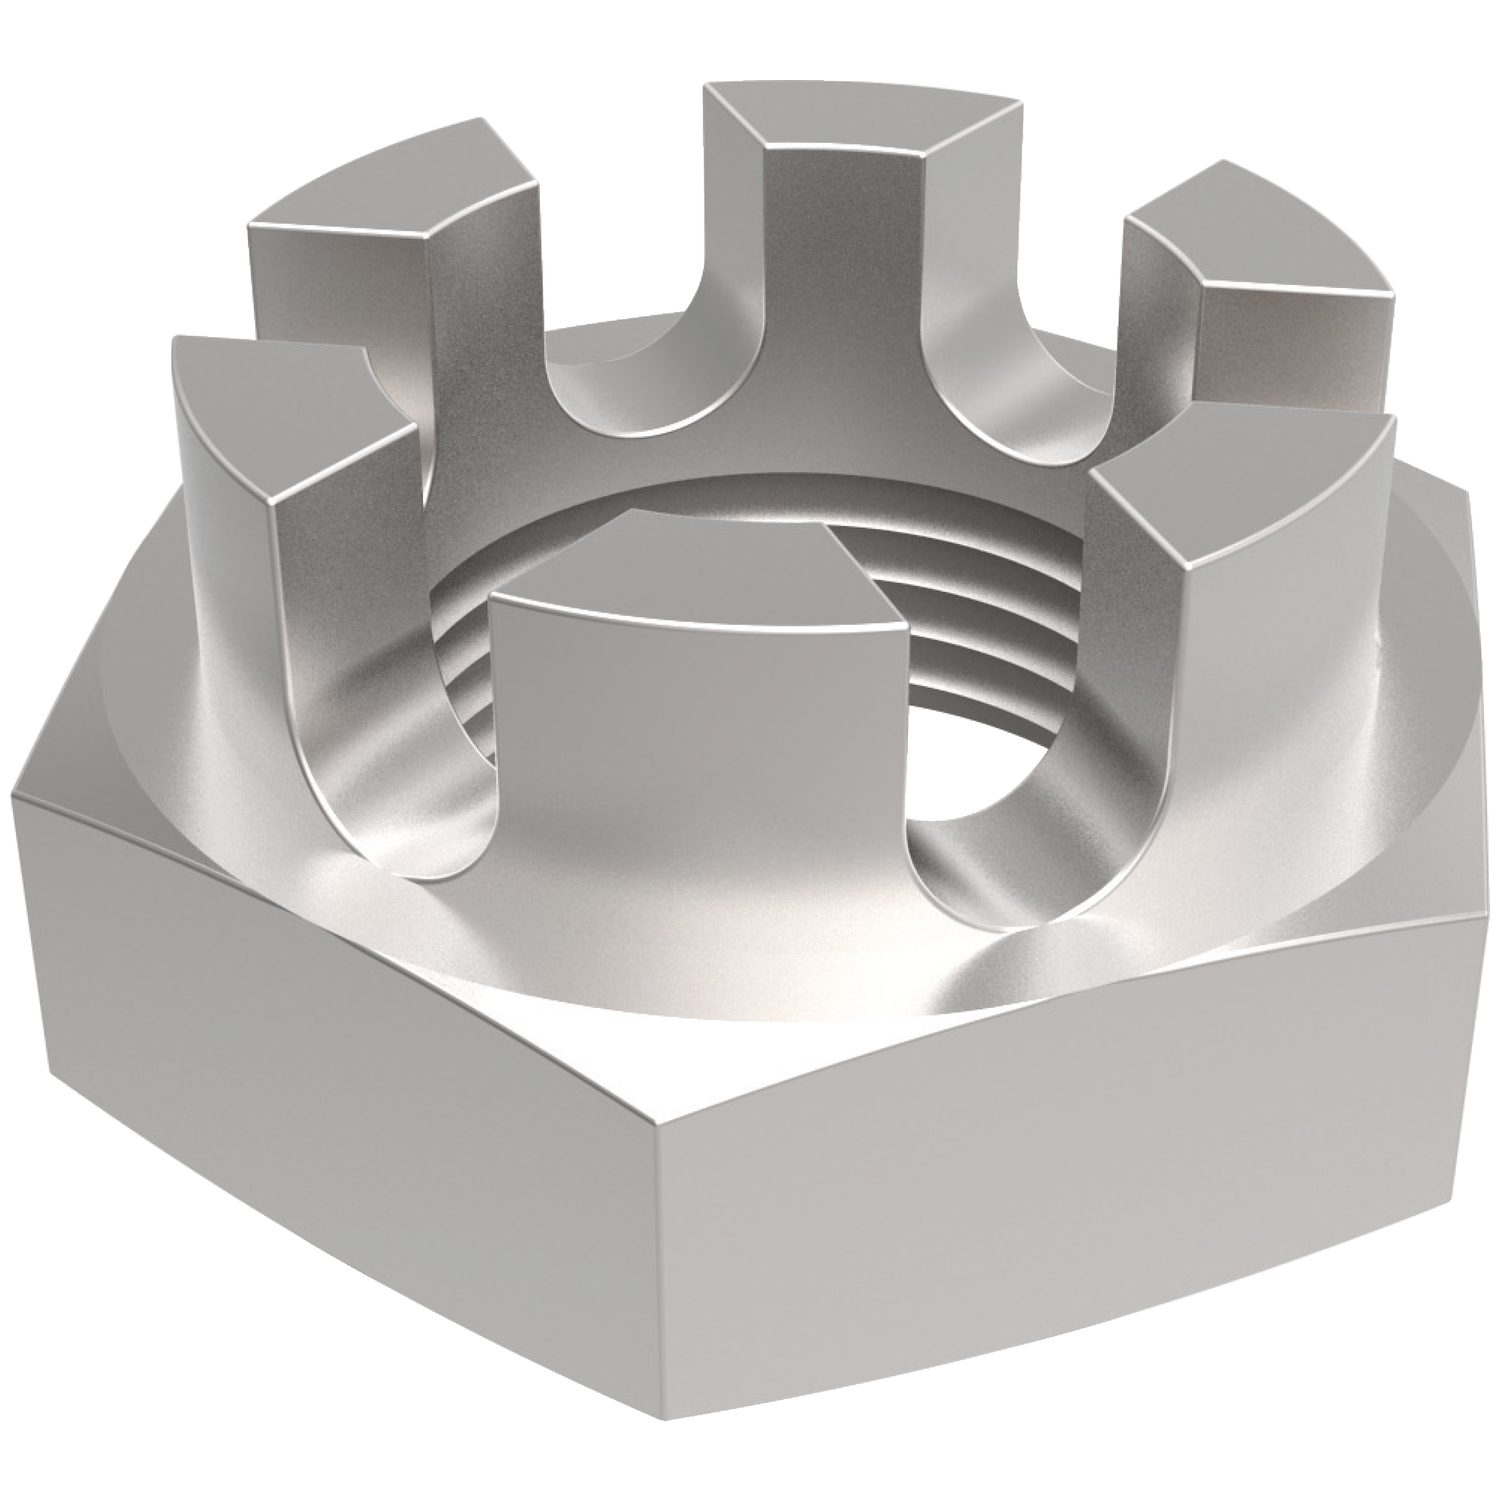 Hexagon Castle Nuts Thin Type Thin hexagon castle nuts made from zinc-plated steel. Sizes from M6 to M30. Manufactured to DIN 937.